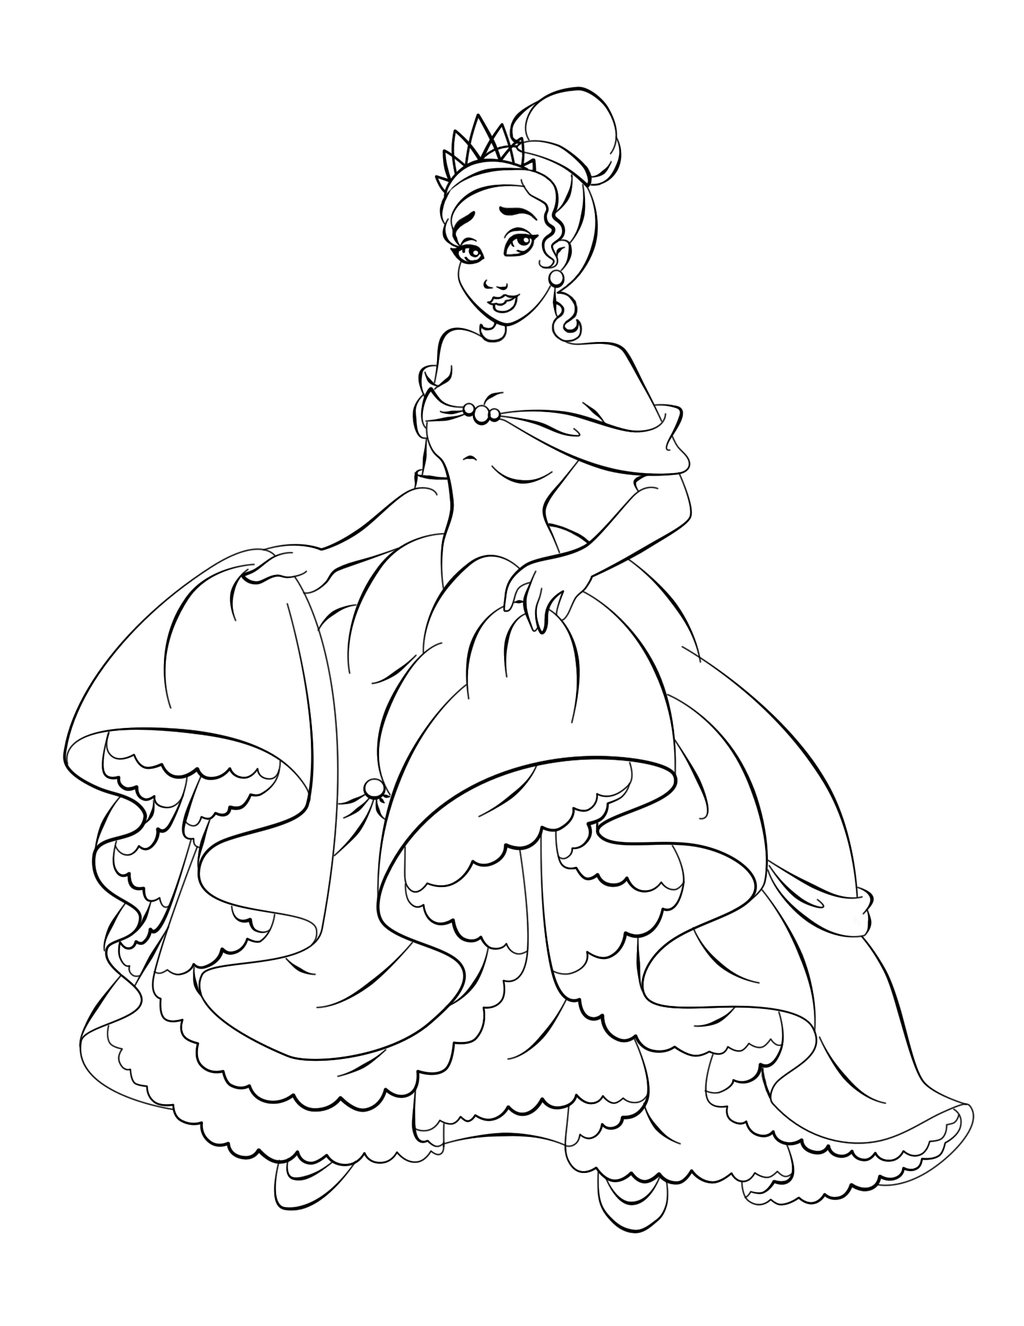 Disney fairies coloring pages Free Coloring Pages - coloring pages printable disney